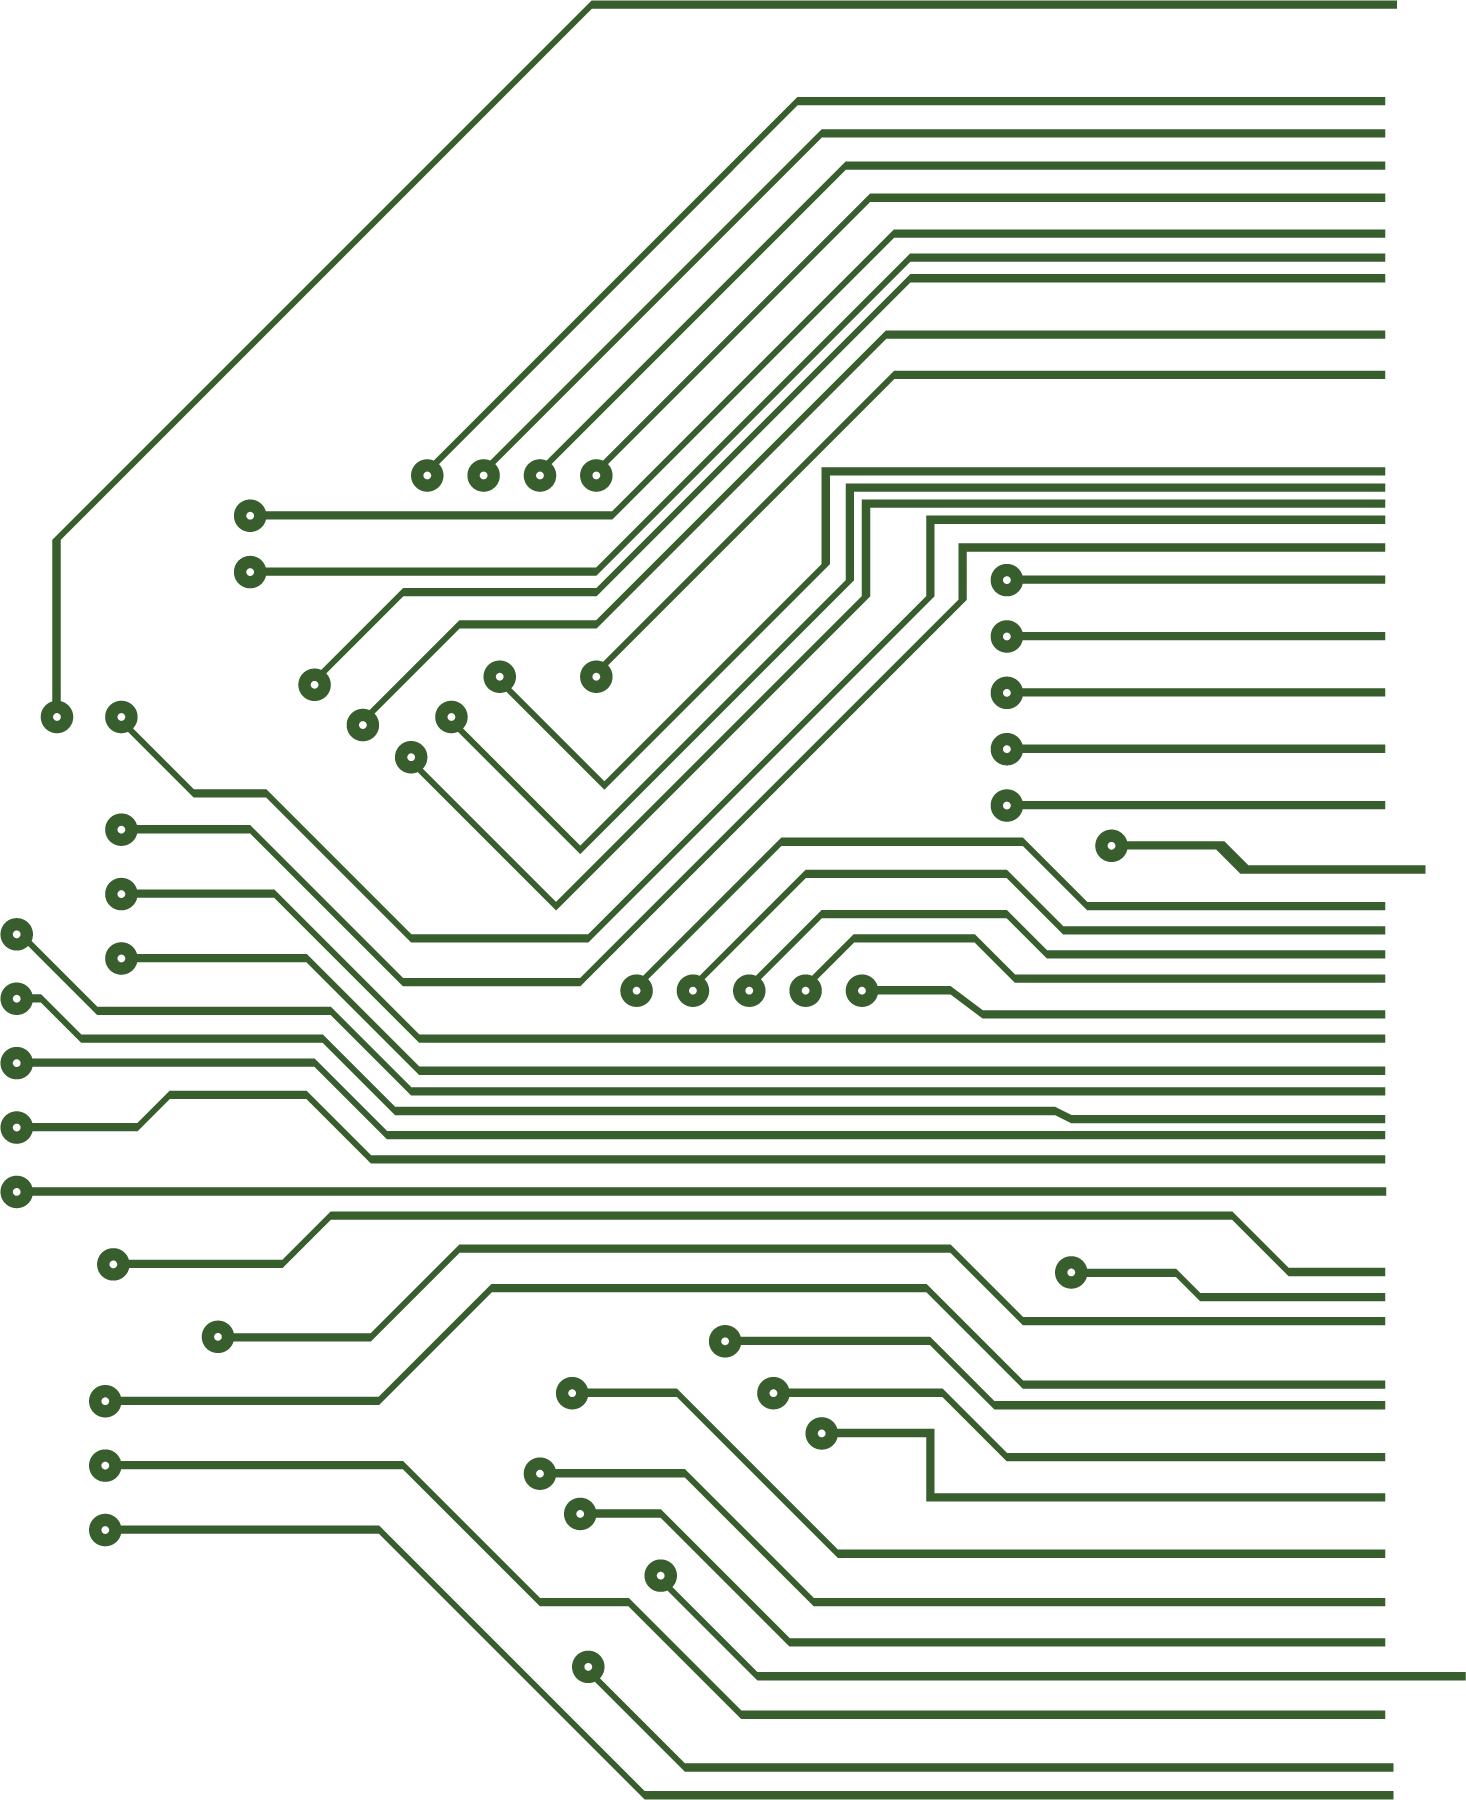 Circuit board png. Printed electronic electrical network